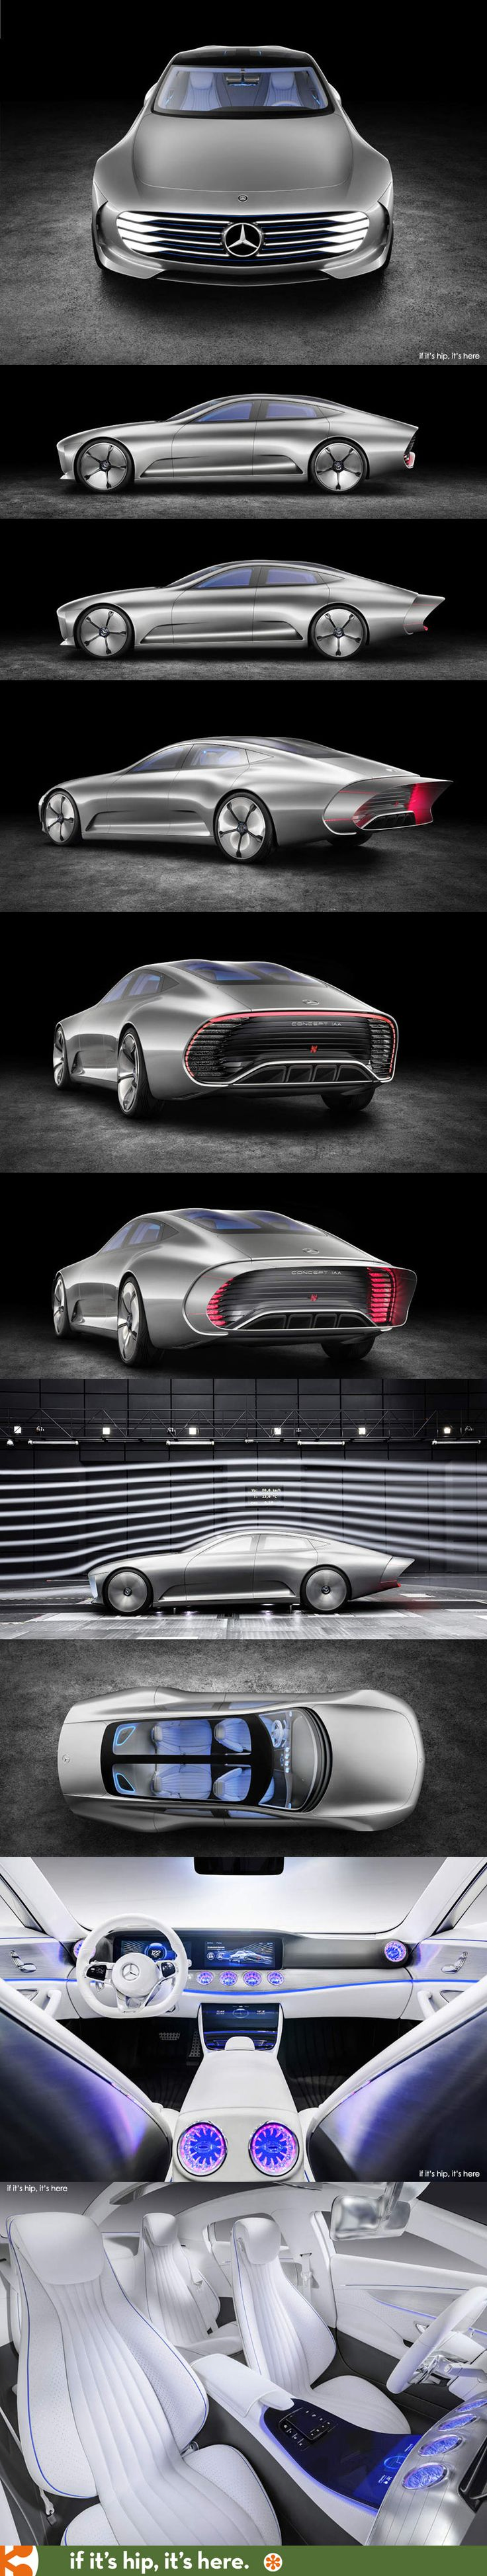 The Intelligent Aerodynamic Automobile Concept by Mercedes-Benz - See more at: http://www.ifitshipitshere.com/the-intelligent-aerodynamic-automobile-concept-by-mercedes-benz/#sthash.j3fAVR8t.dpuf